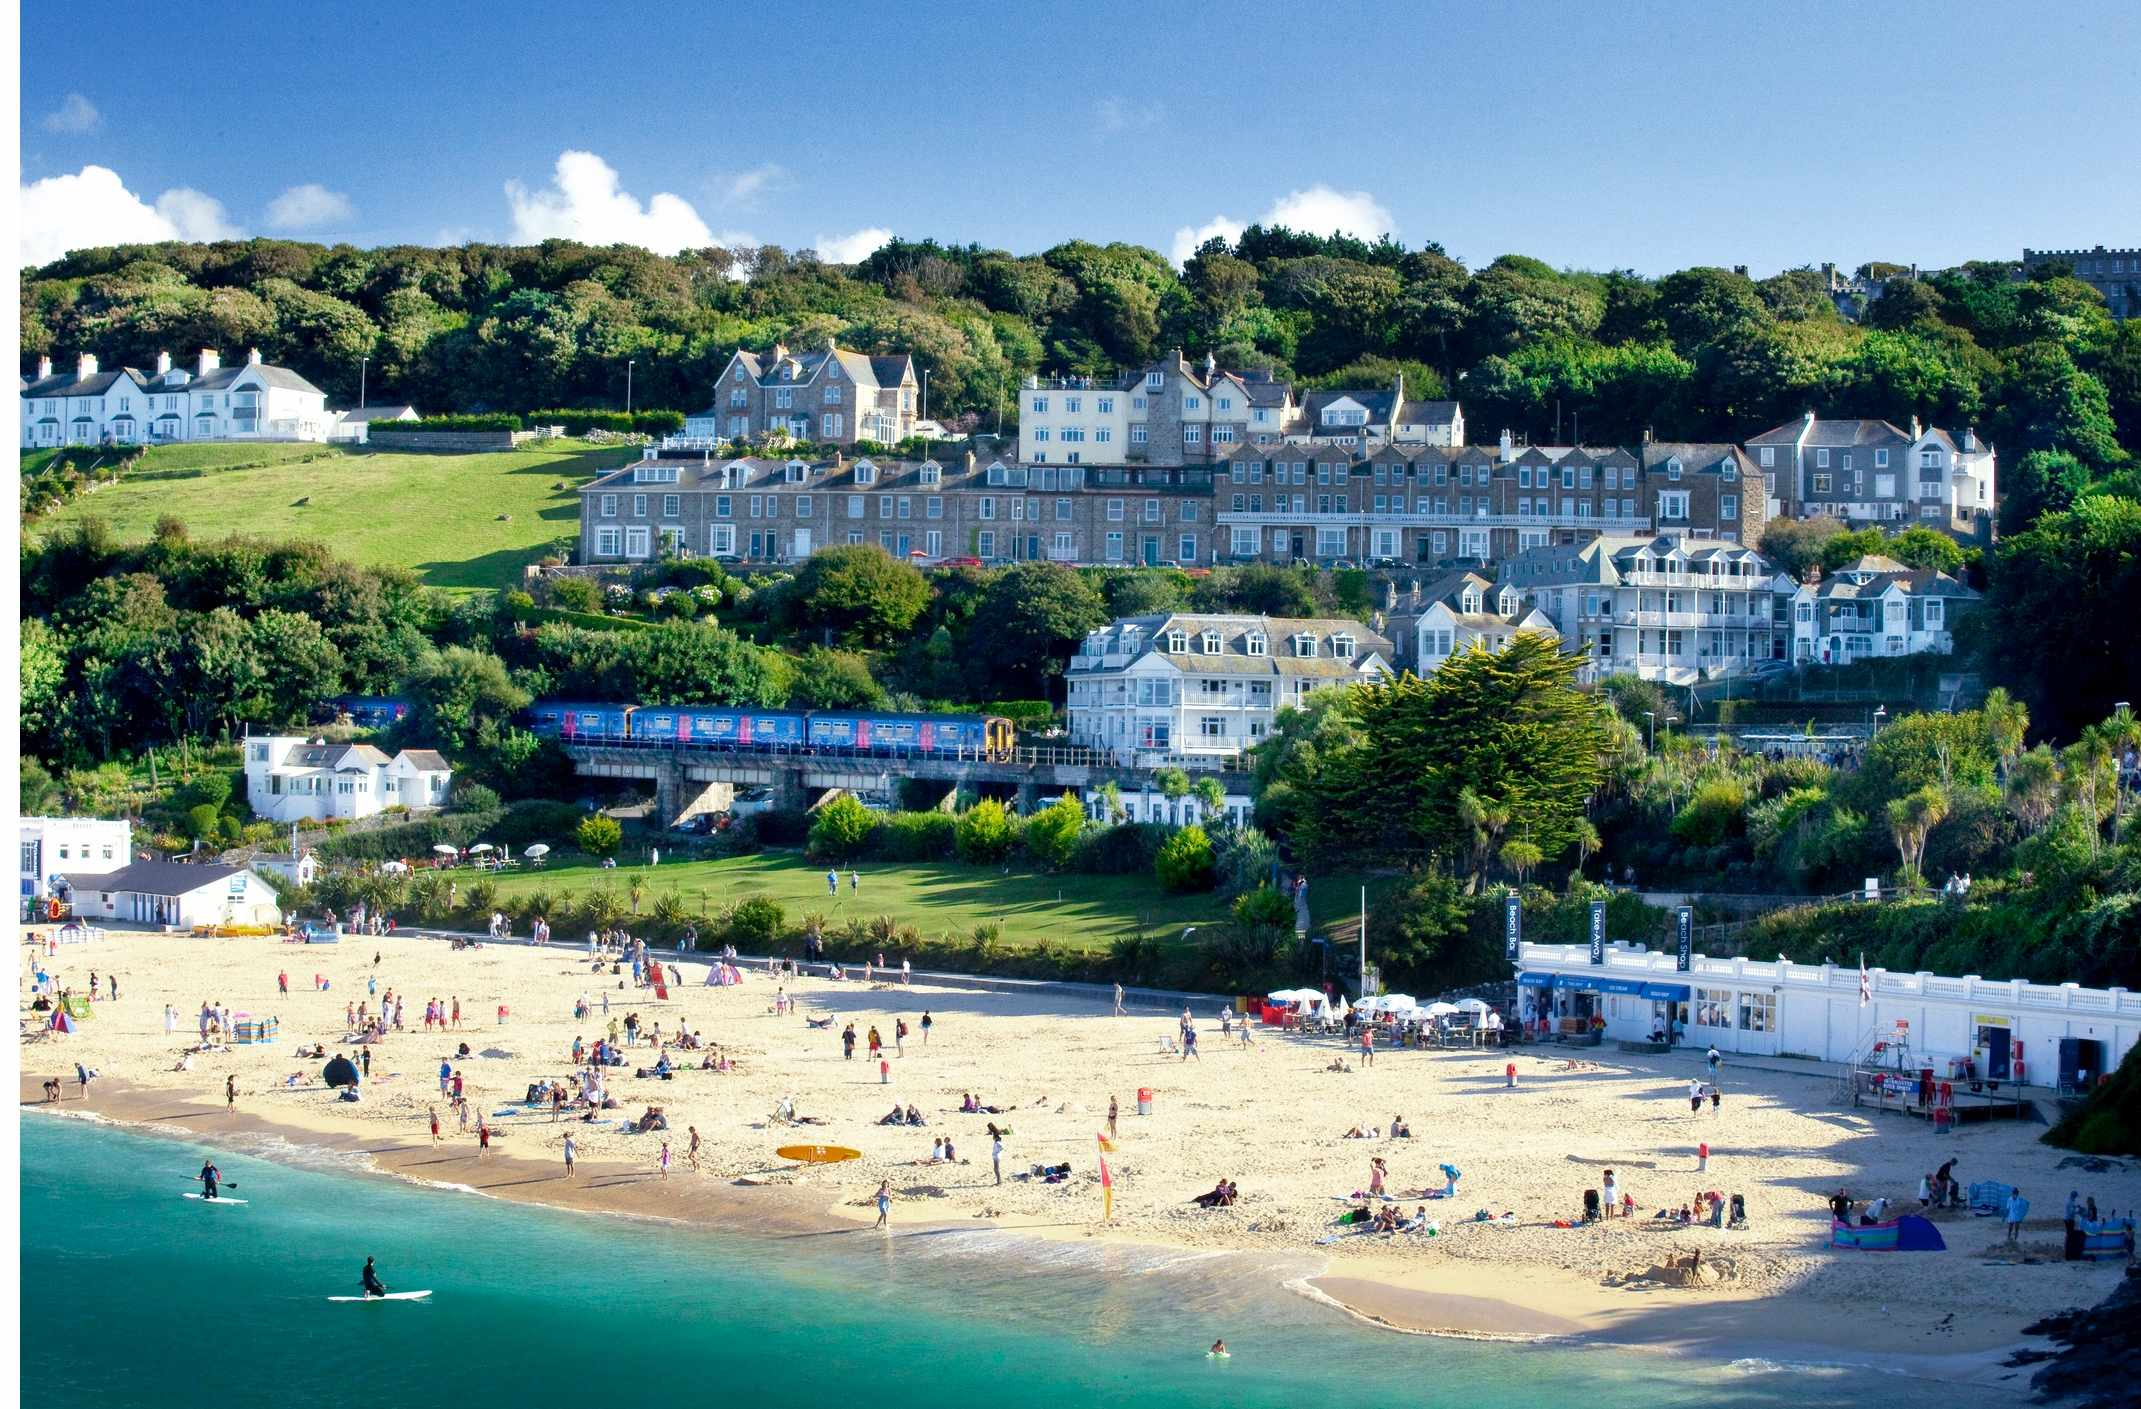 Porthminster-beach-90fcab9